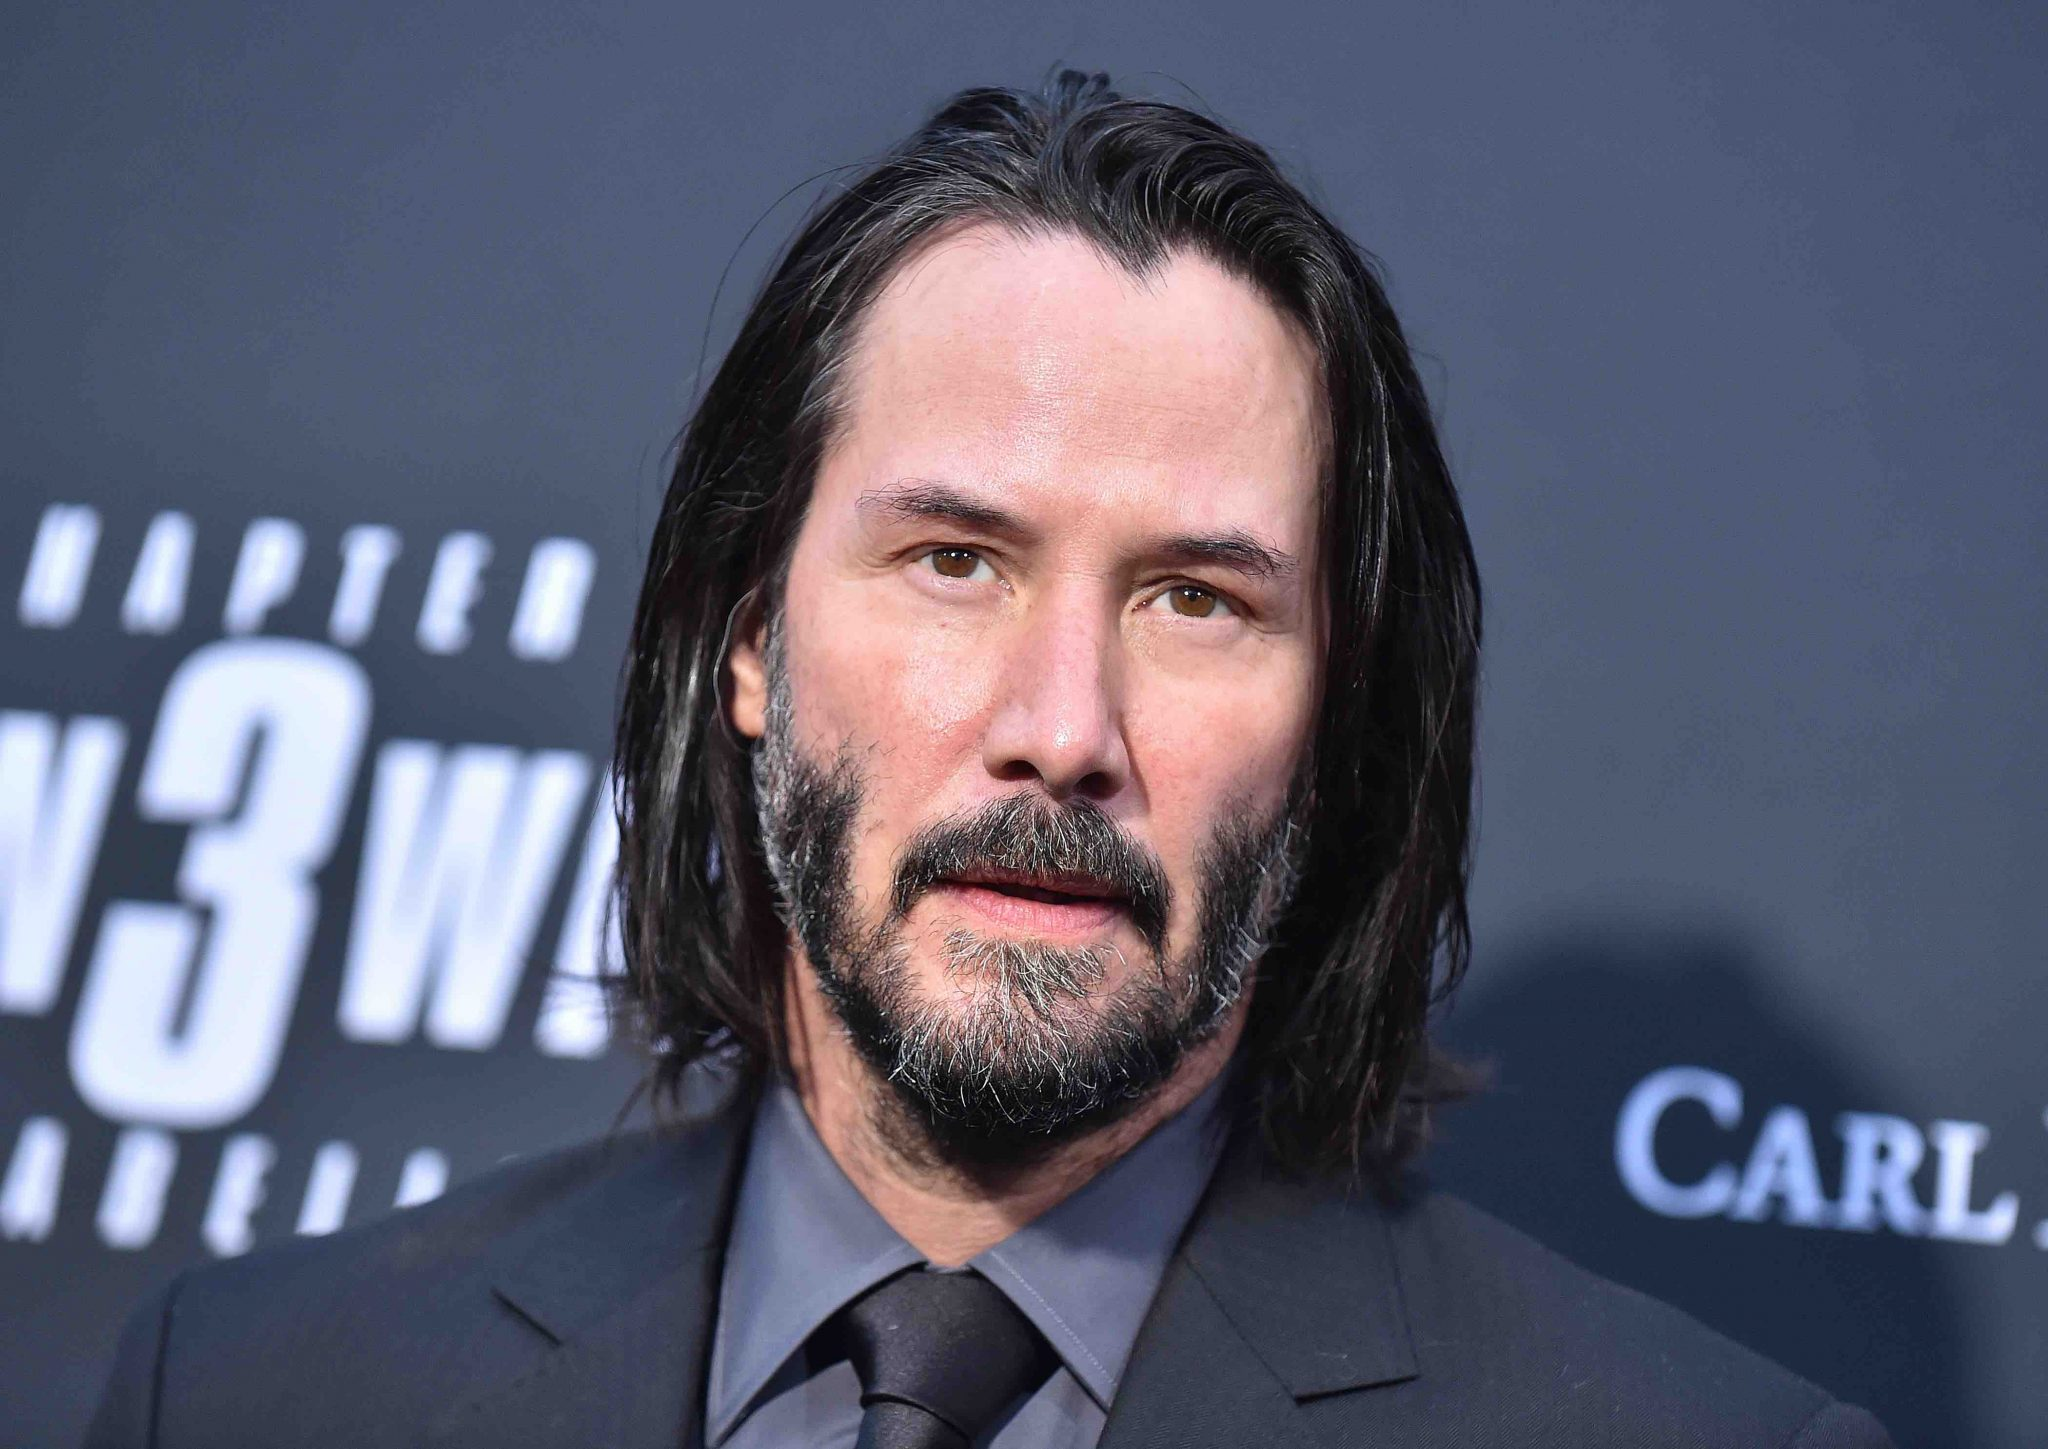 Keanu Reeves has of the most famous celebrity beards in his recent film work